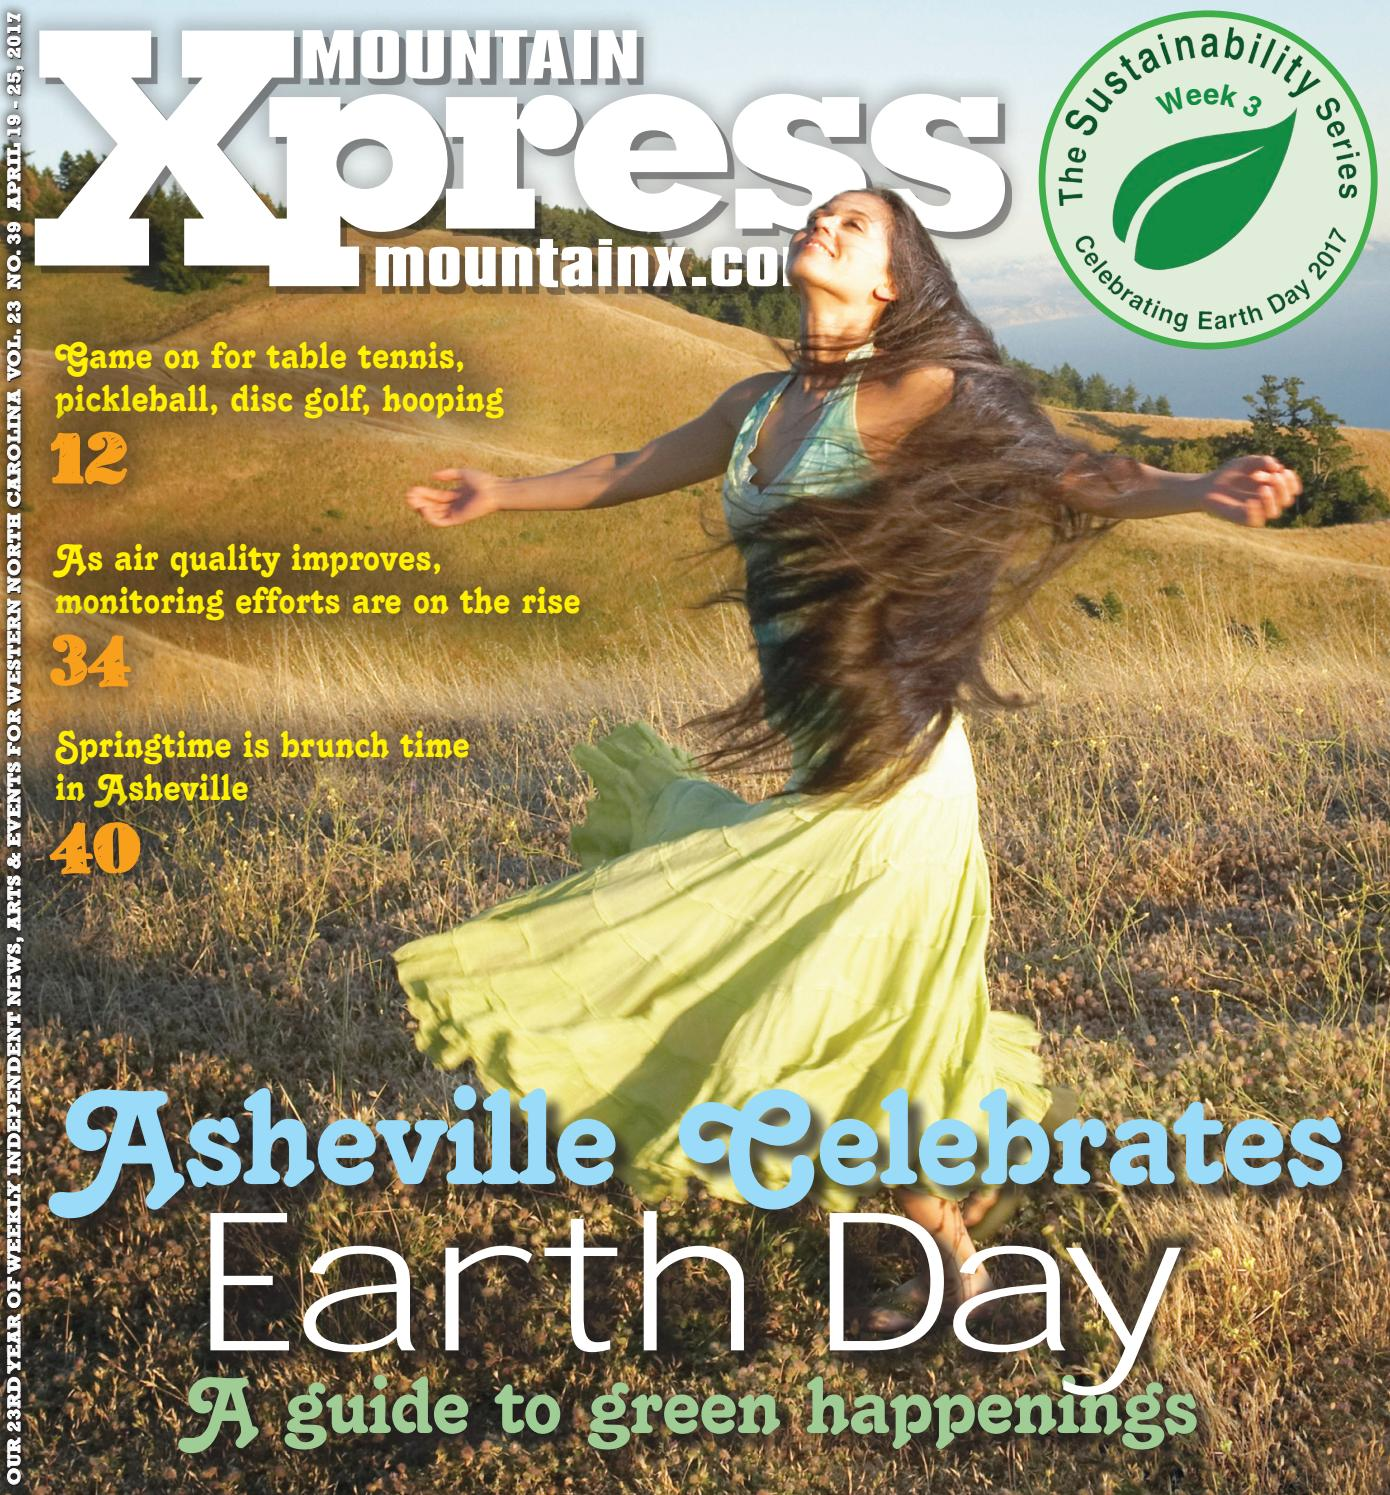 Mountain Xpress 04 19 17 by Mountain Xpress - issuu